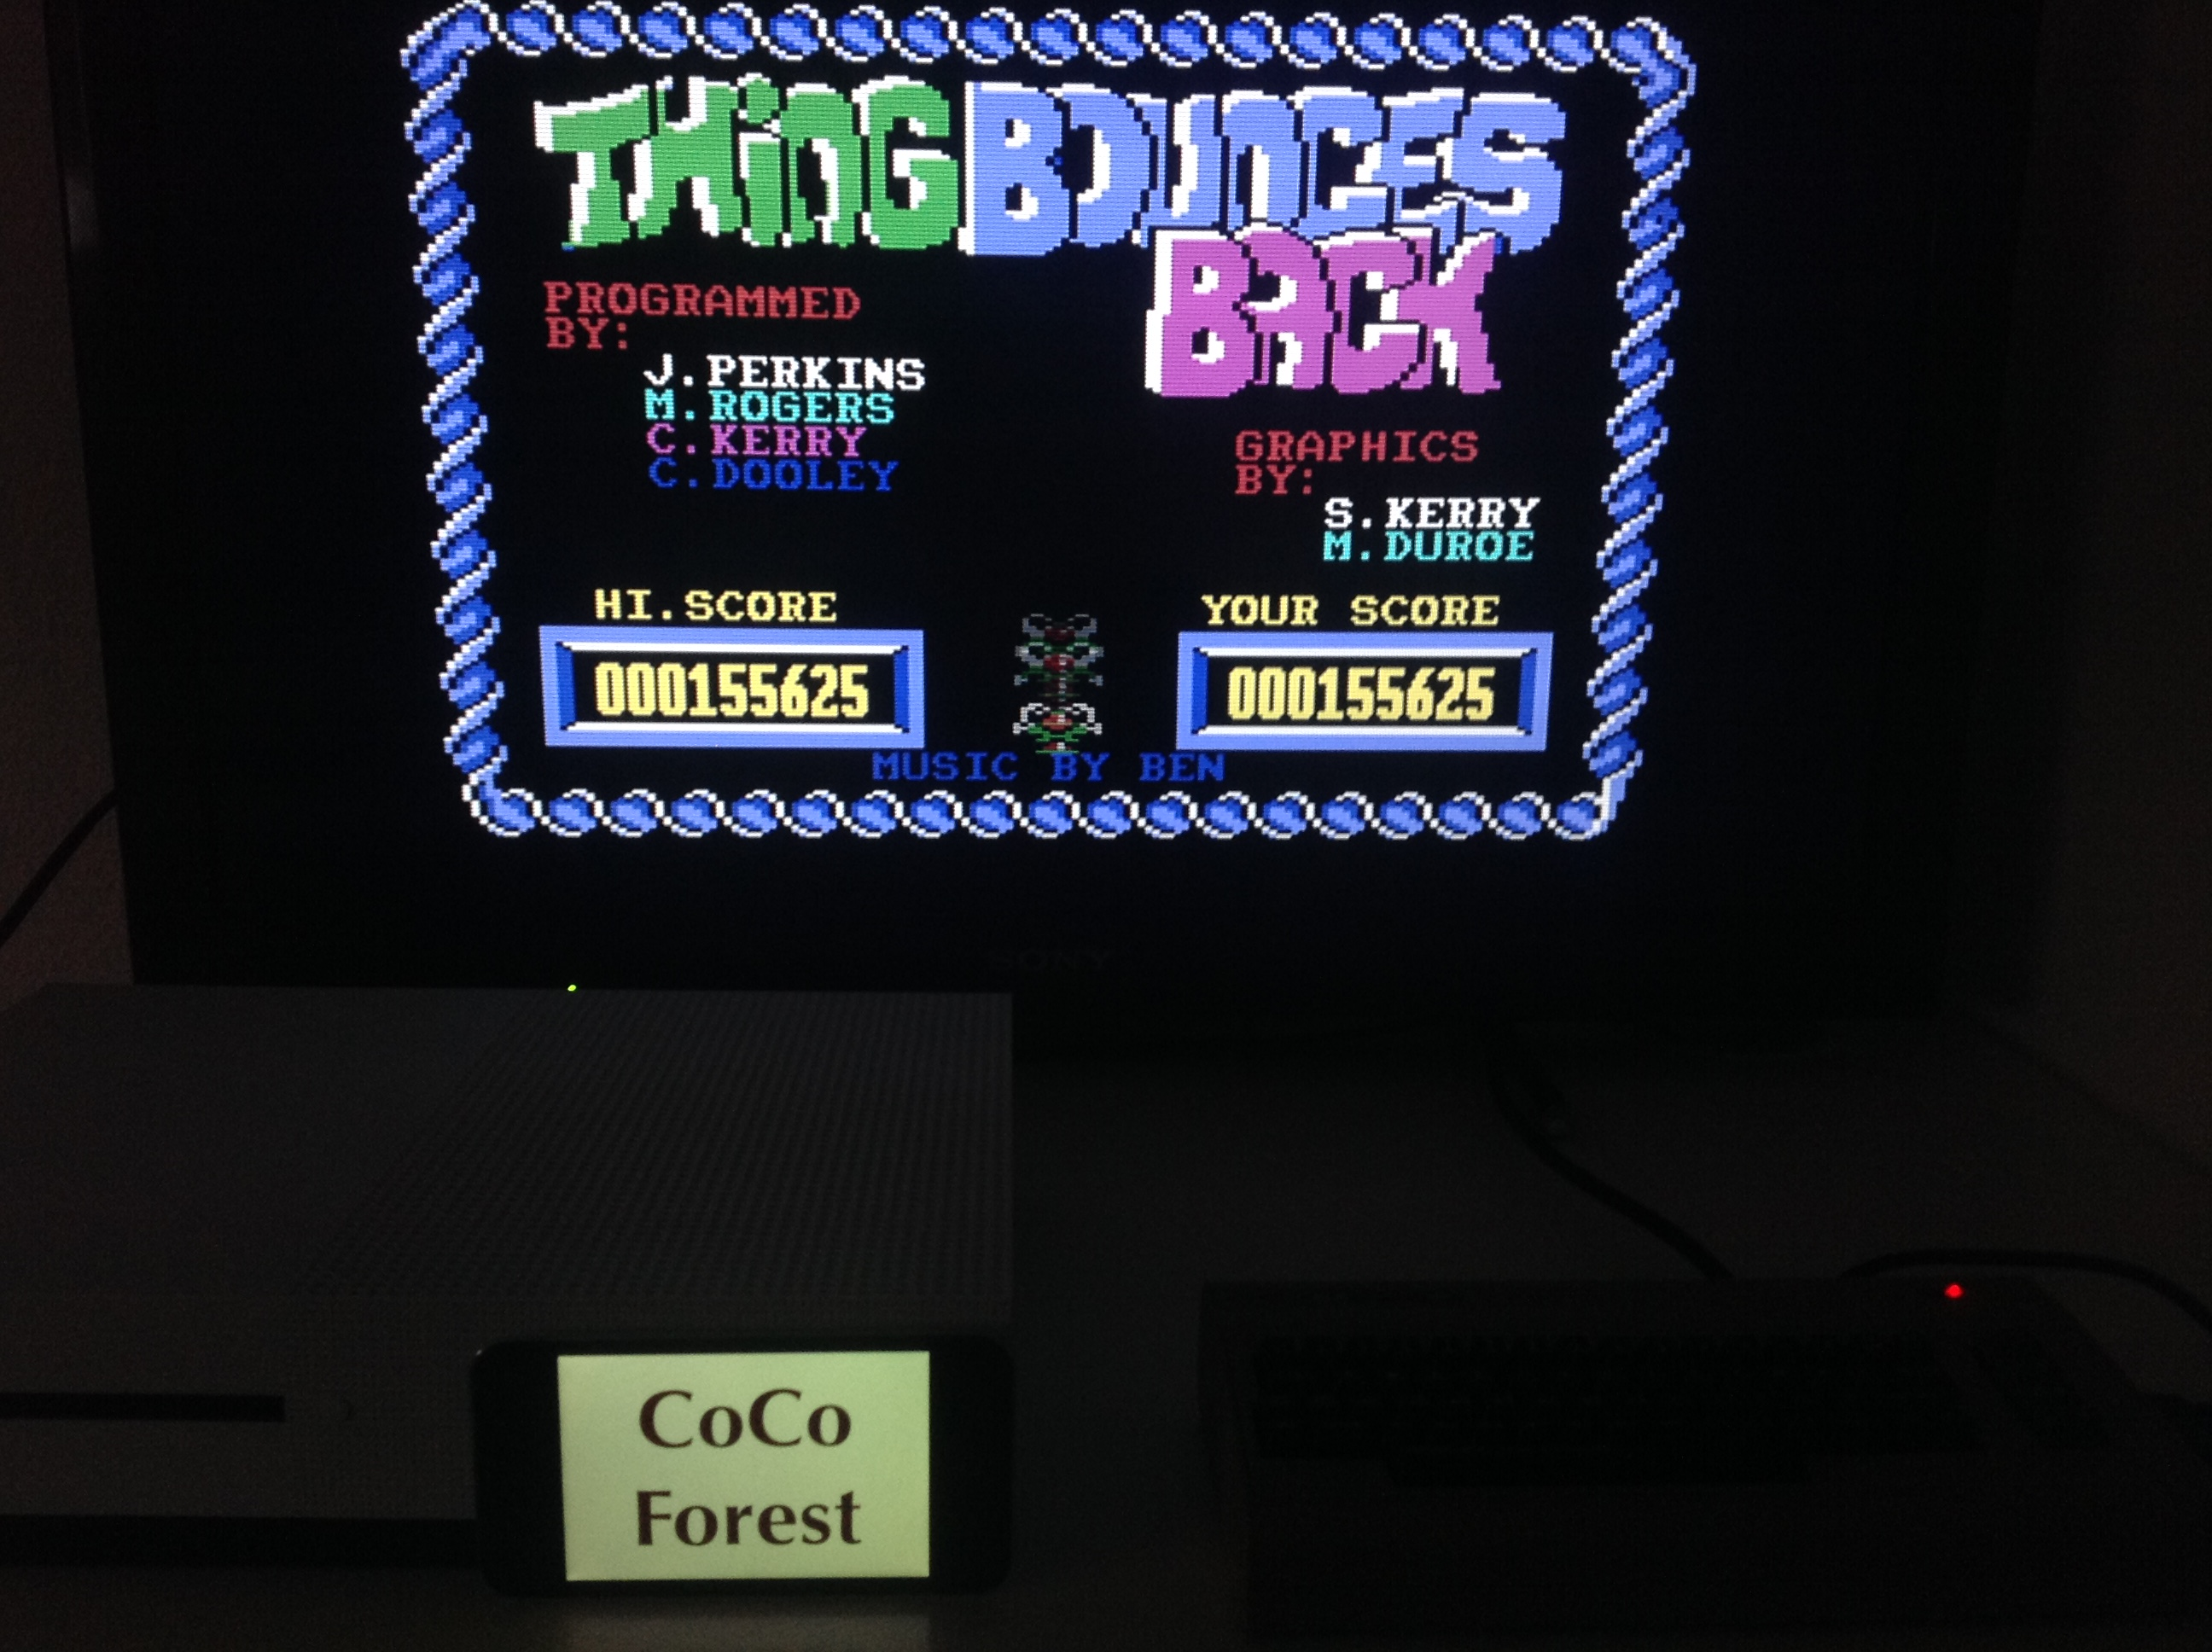 CoCoForest: Thing Bounces Back (Commodore 64 Emulated) 155,625 points on 2018-04-08 12:20:19